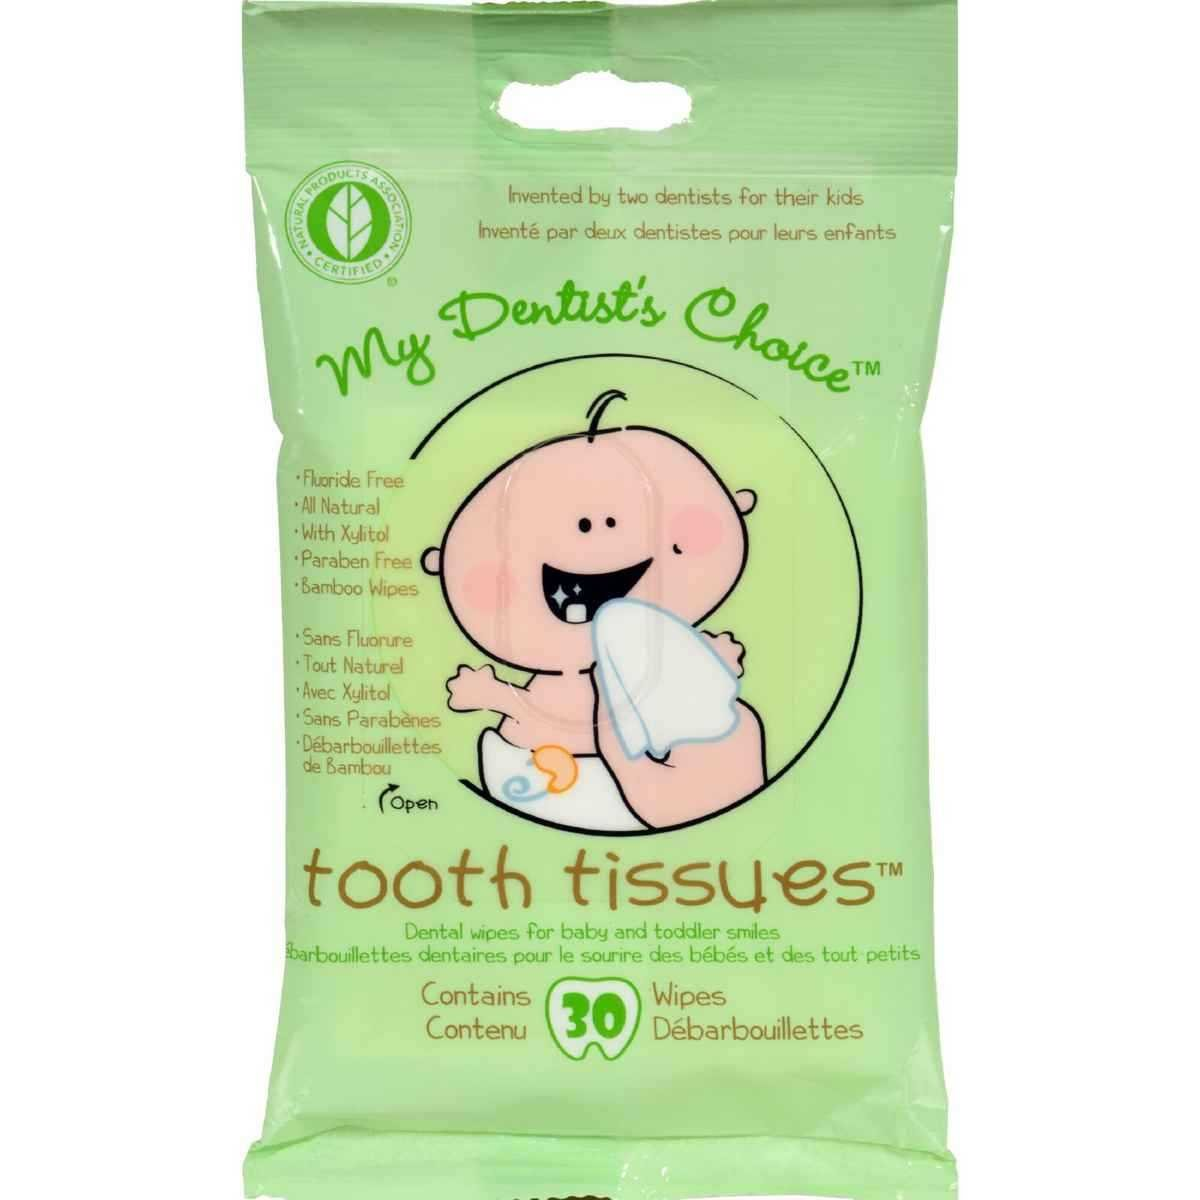 My Dentist's Choice Dental Wipes Tooth Tissues -- 30 Wipes [Health and Beauty] 201